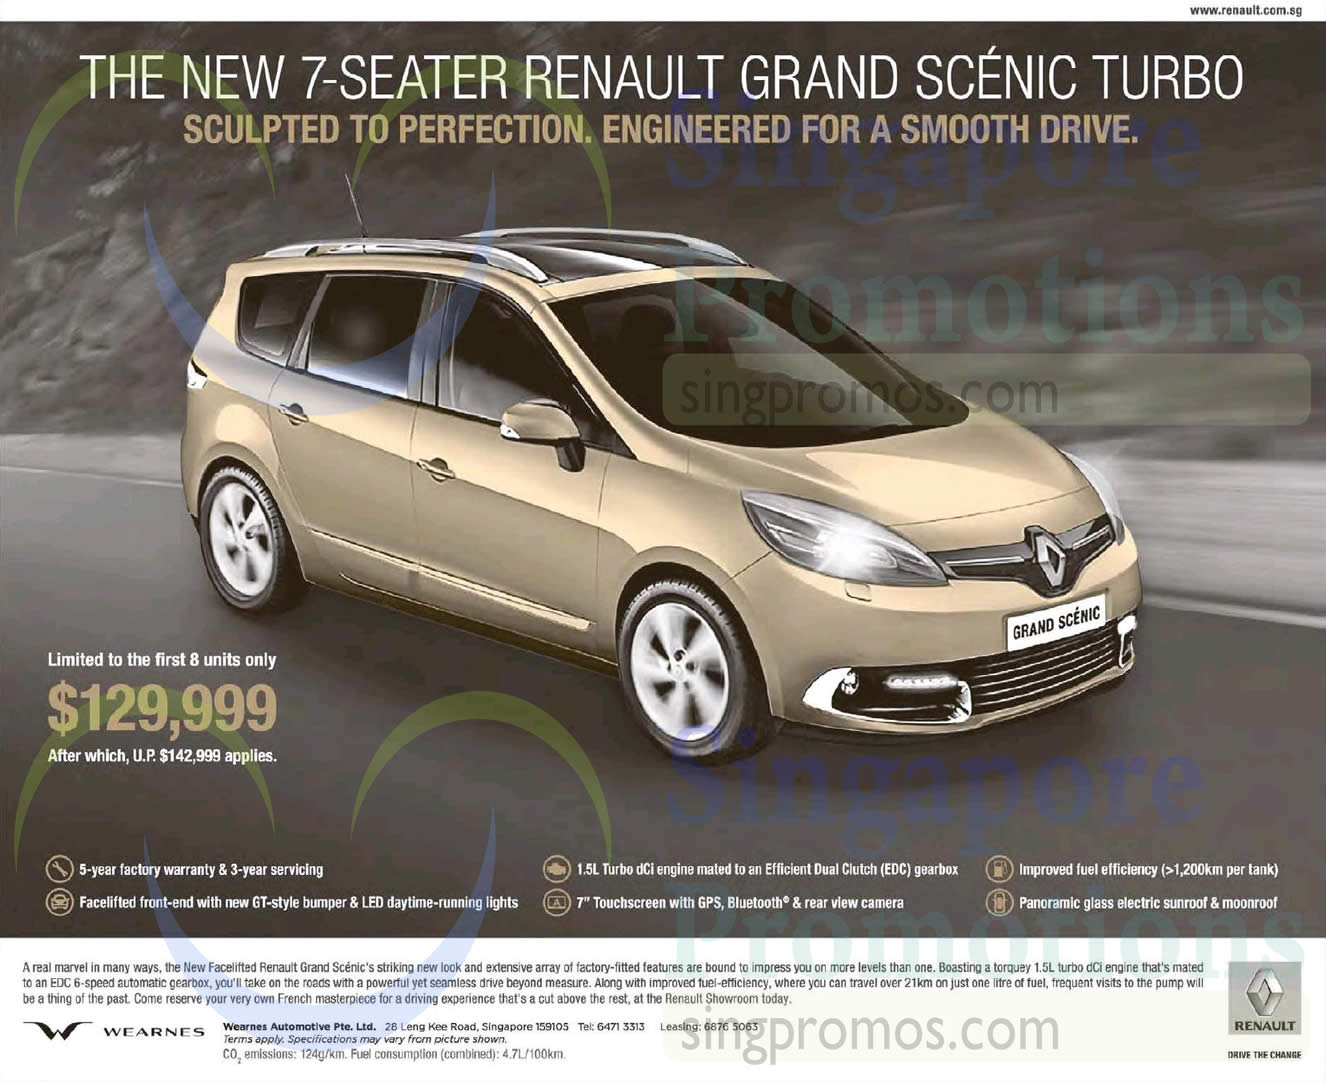 renault grand scenic turbo features price 7 mar 2015. Black Bedroom Furniture Sets. Home Design Ideas